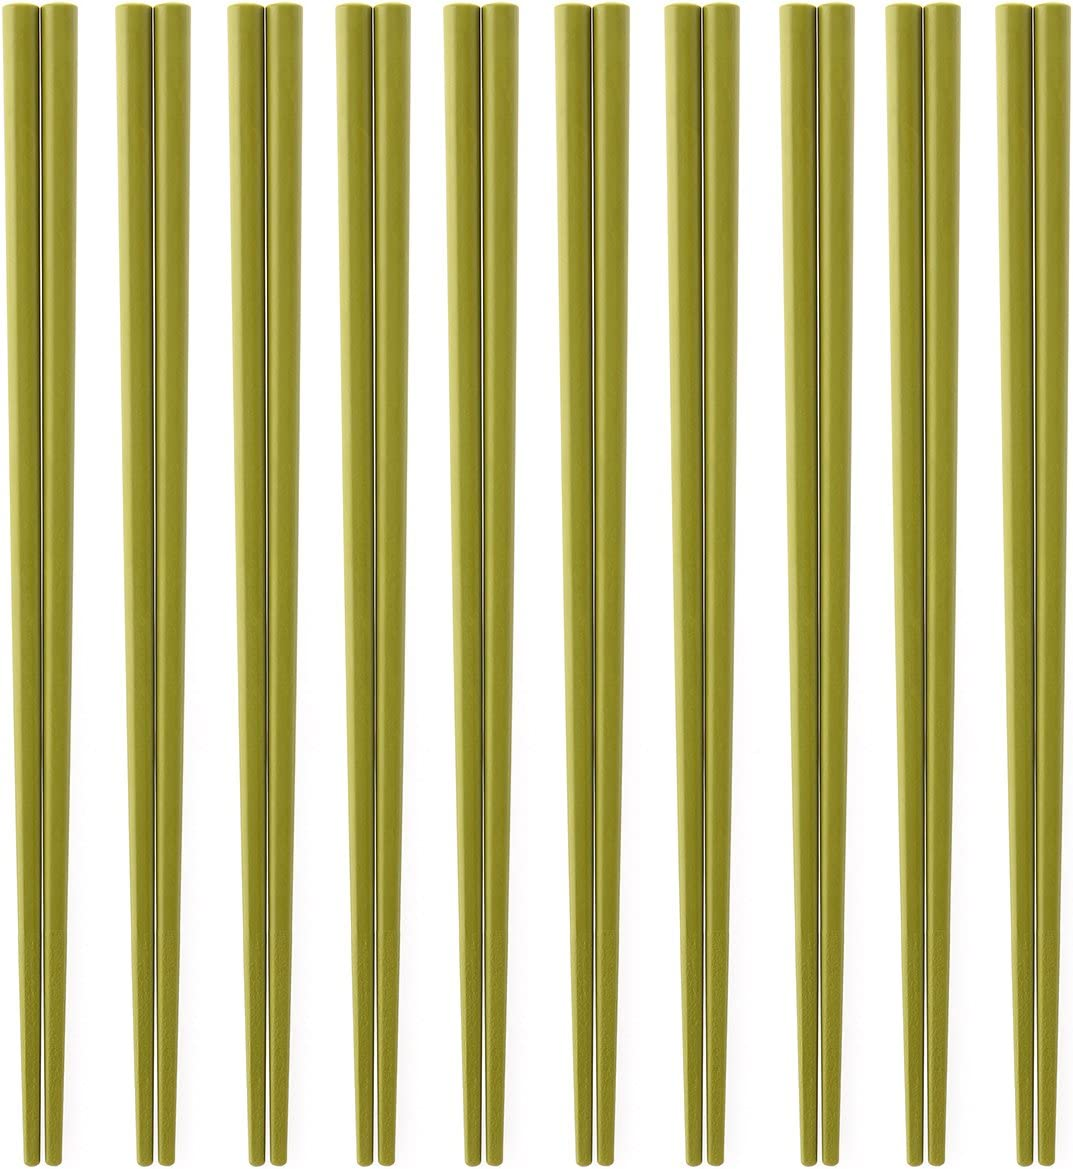 Made in Japan business for 10 Eco chopsticks set meal (powdered green tea color) SPS resin use chopsticks ECO Dishwasher, high temperature and depot support 22.5cm x 3mm angle (chopsticks point) Eco Friendly sps resin Chopsticks (japan import)